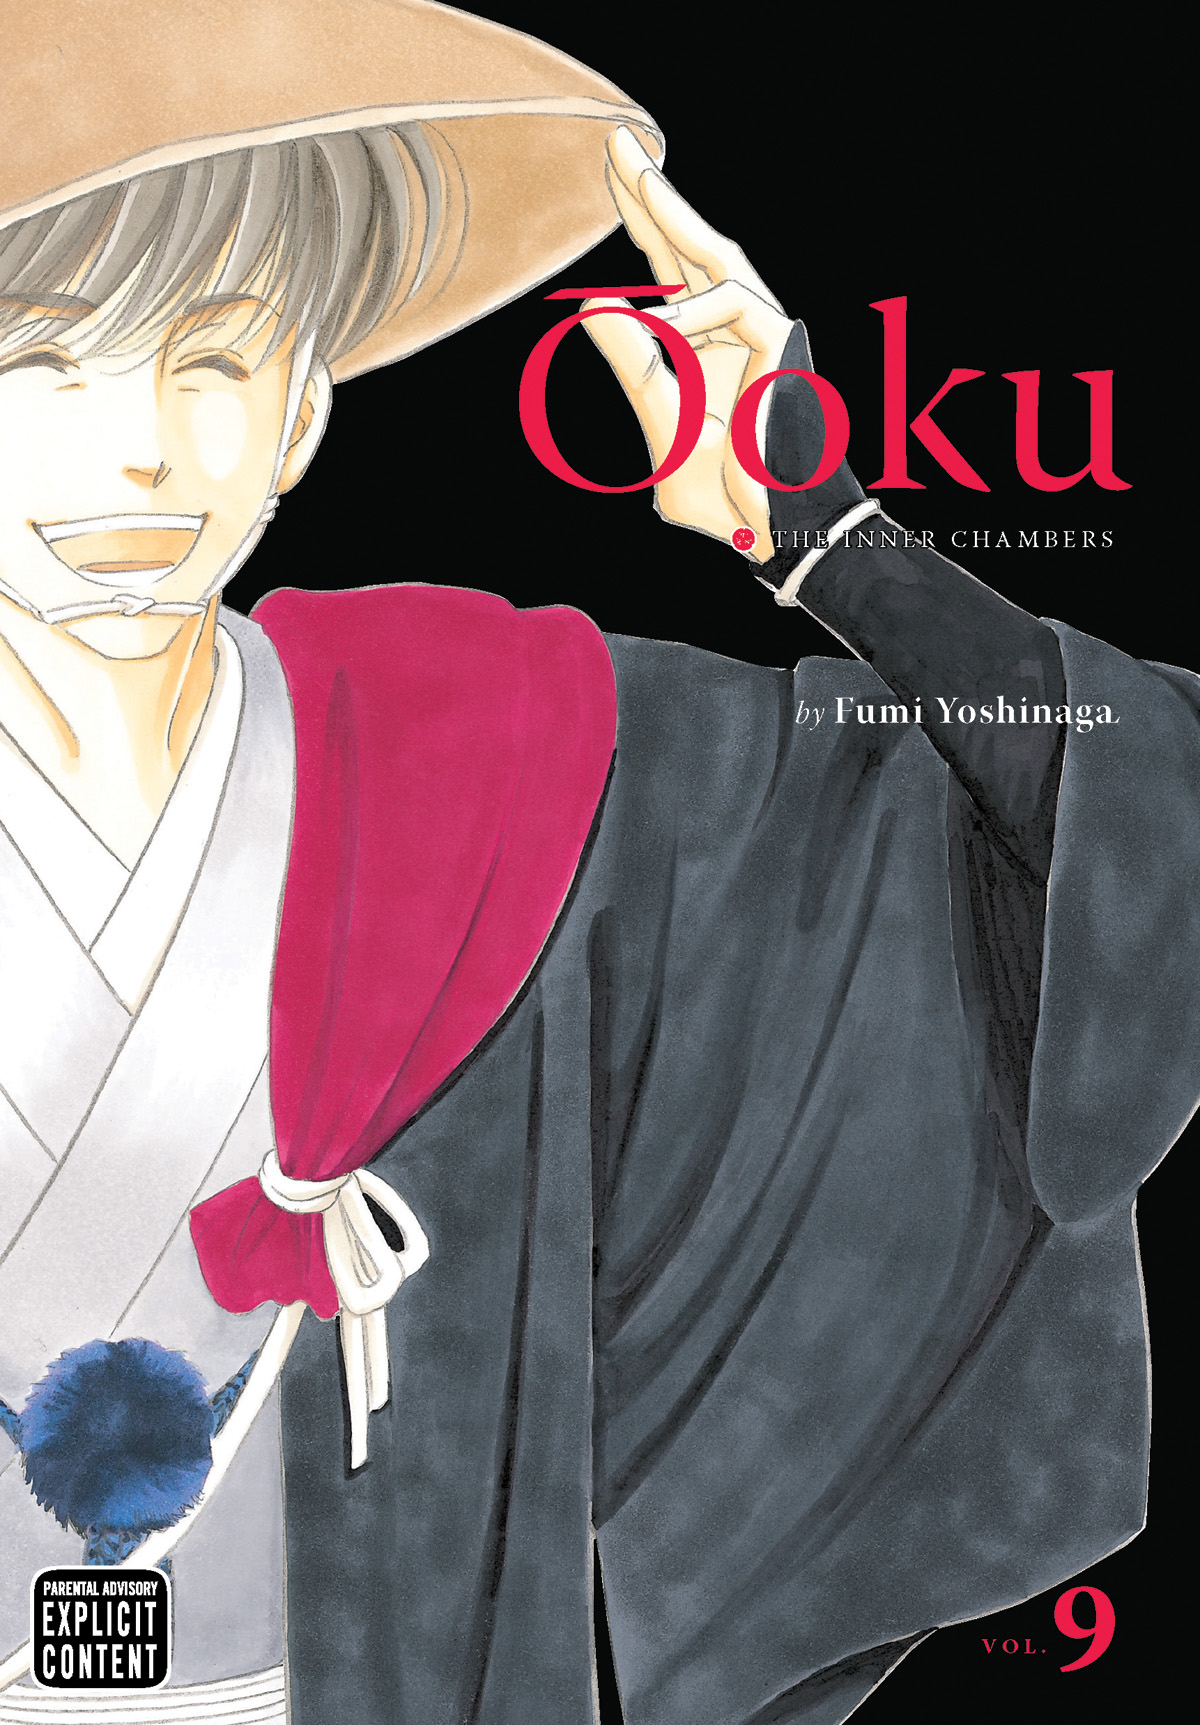 OOKU INNER CHAMBERS GN VOL 09